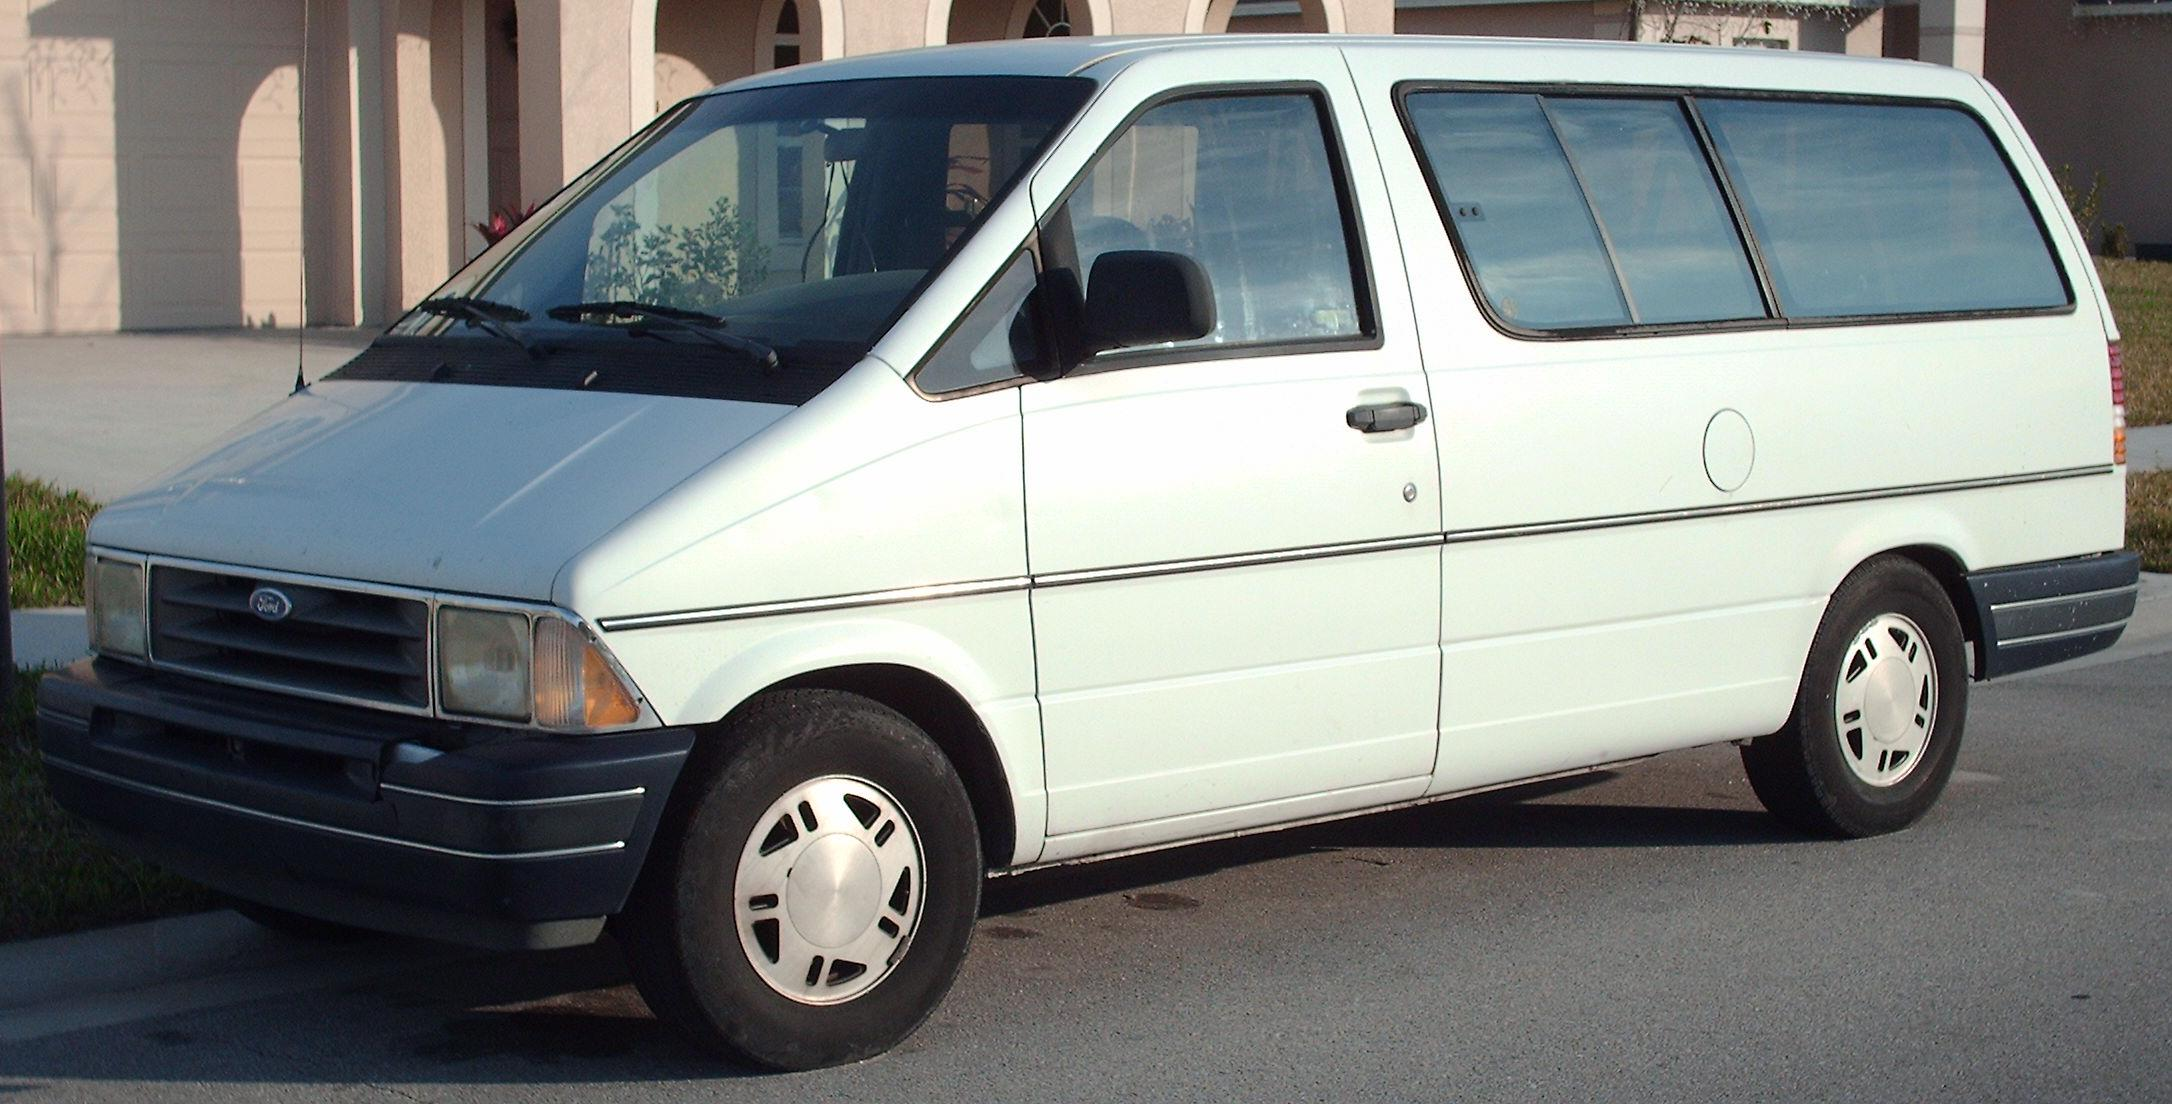 Ford Aerostar Wikipedia 1995 Taurus Engine Diagram